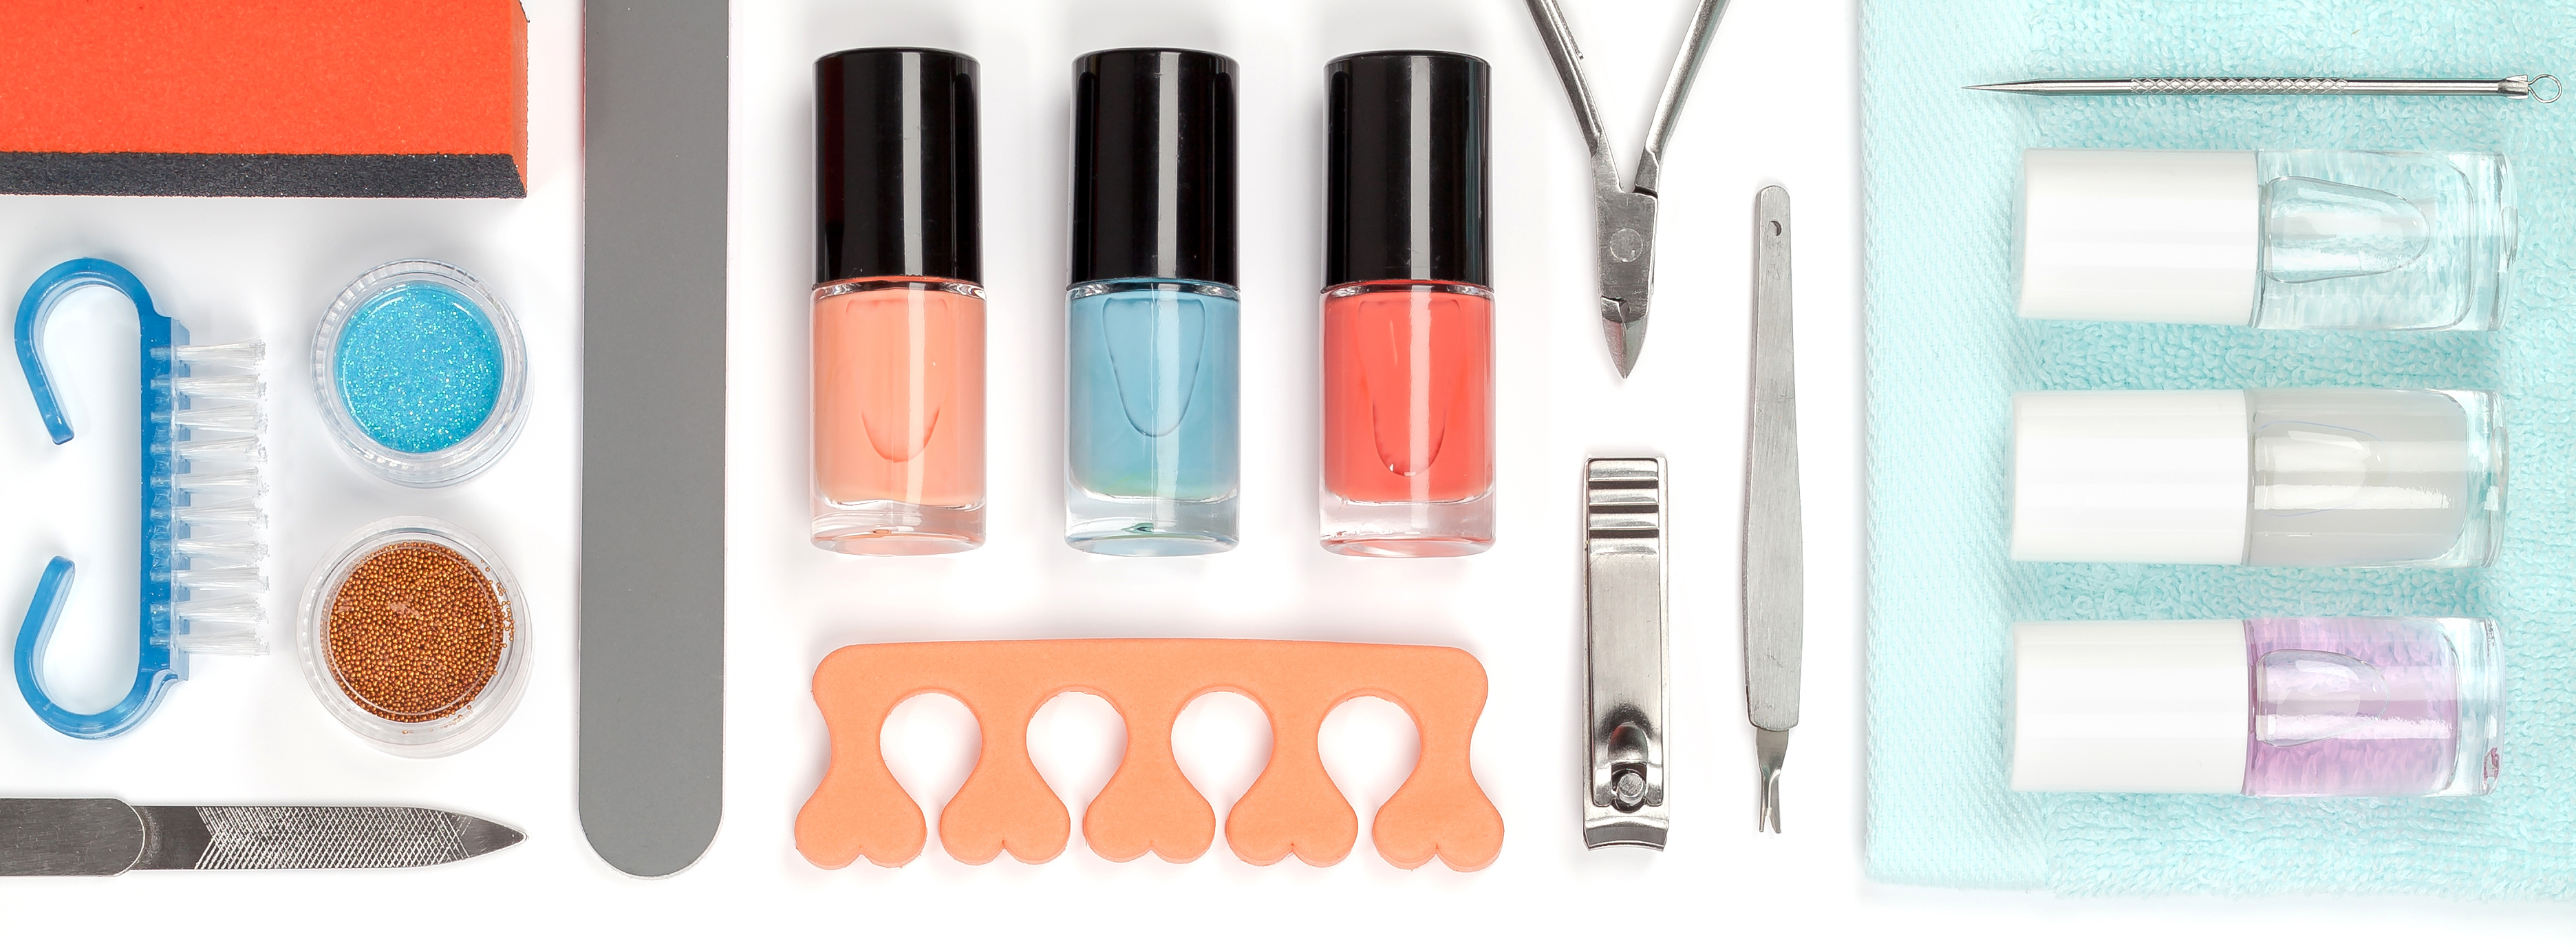 All things nails